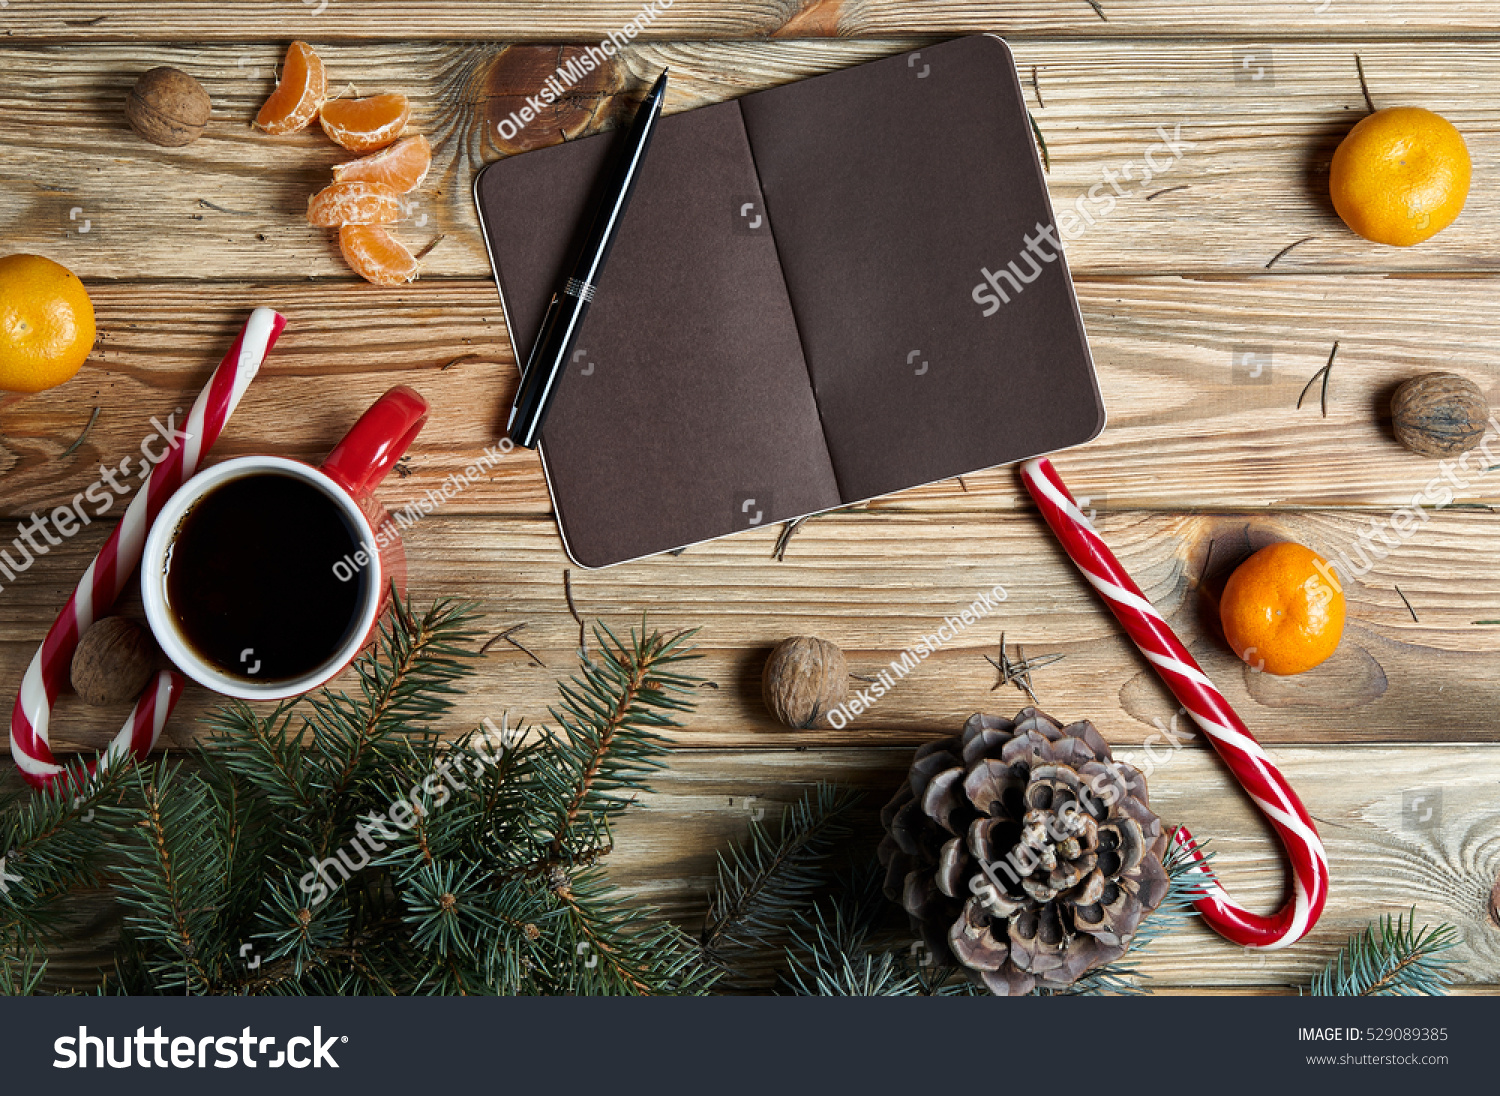 All You Need Write Letter Santa Stock Photo Royalty Free